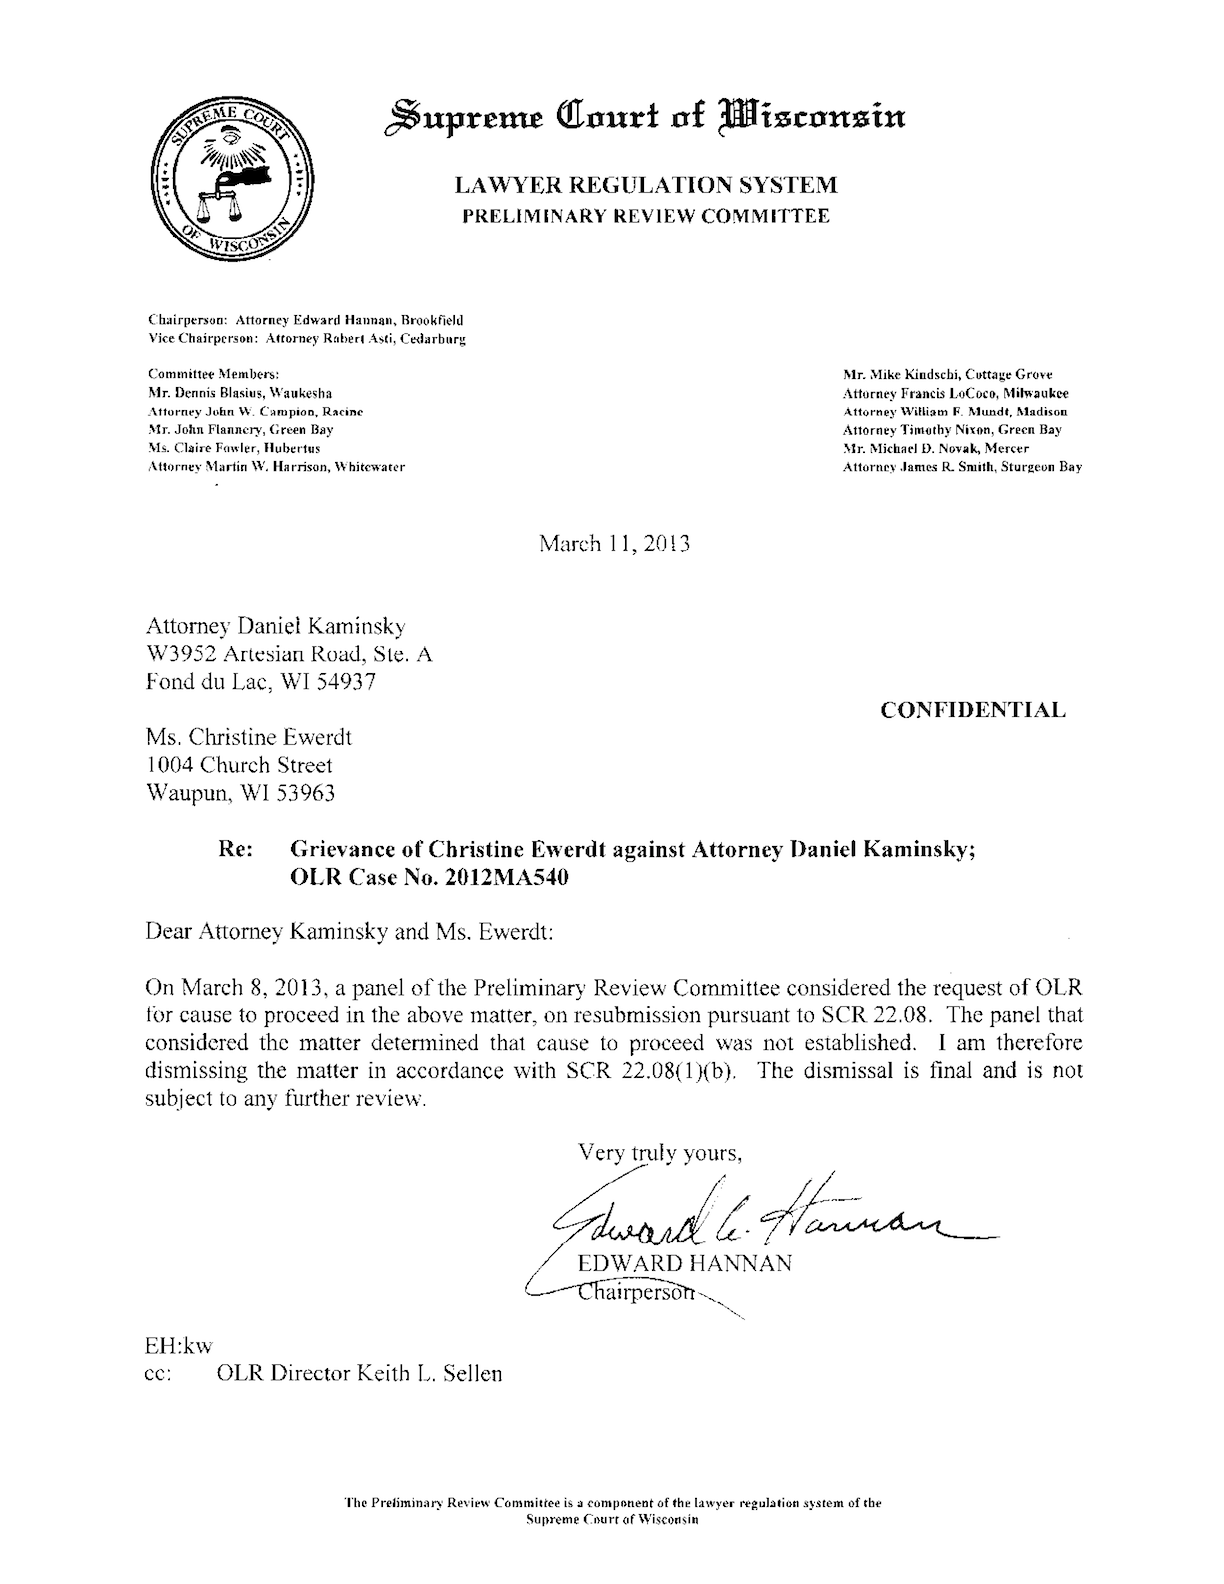 The airplane case against DA formally dismissed.